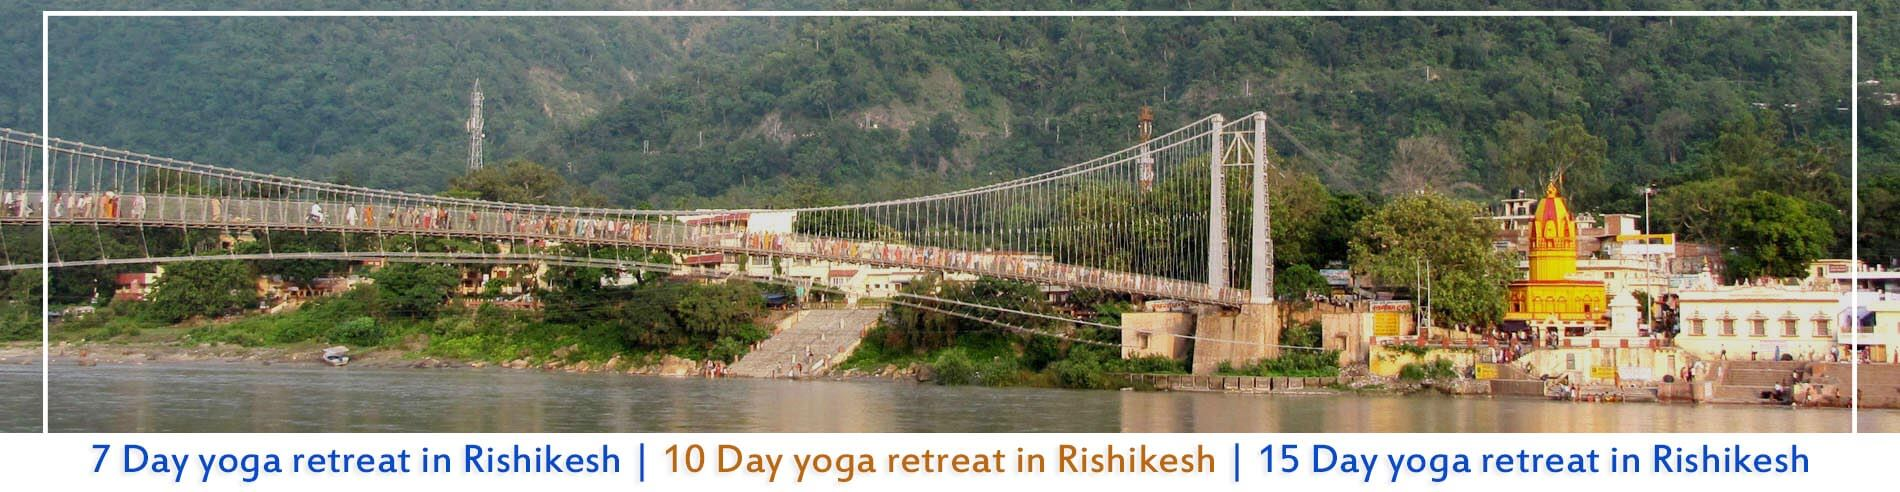 yoga holiday in Rishikesh